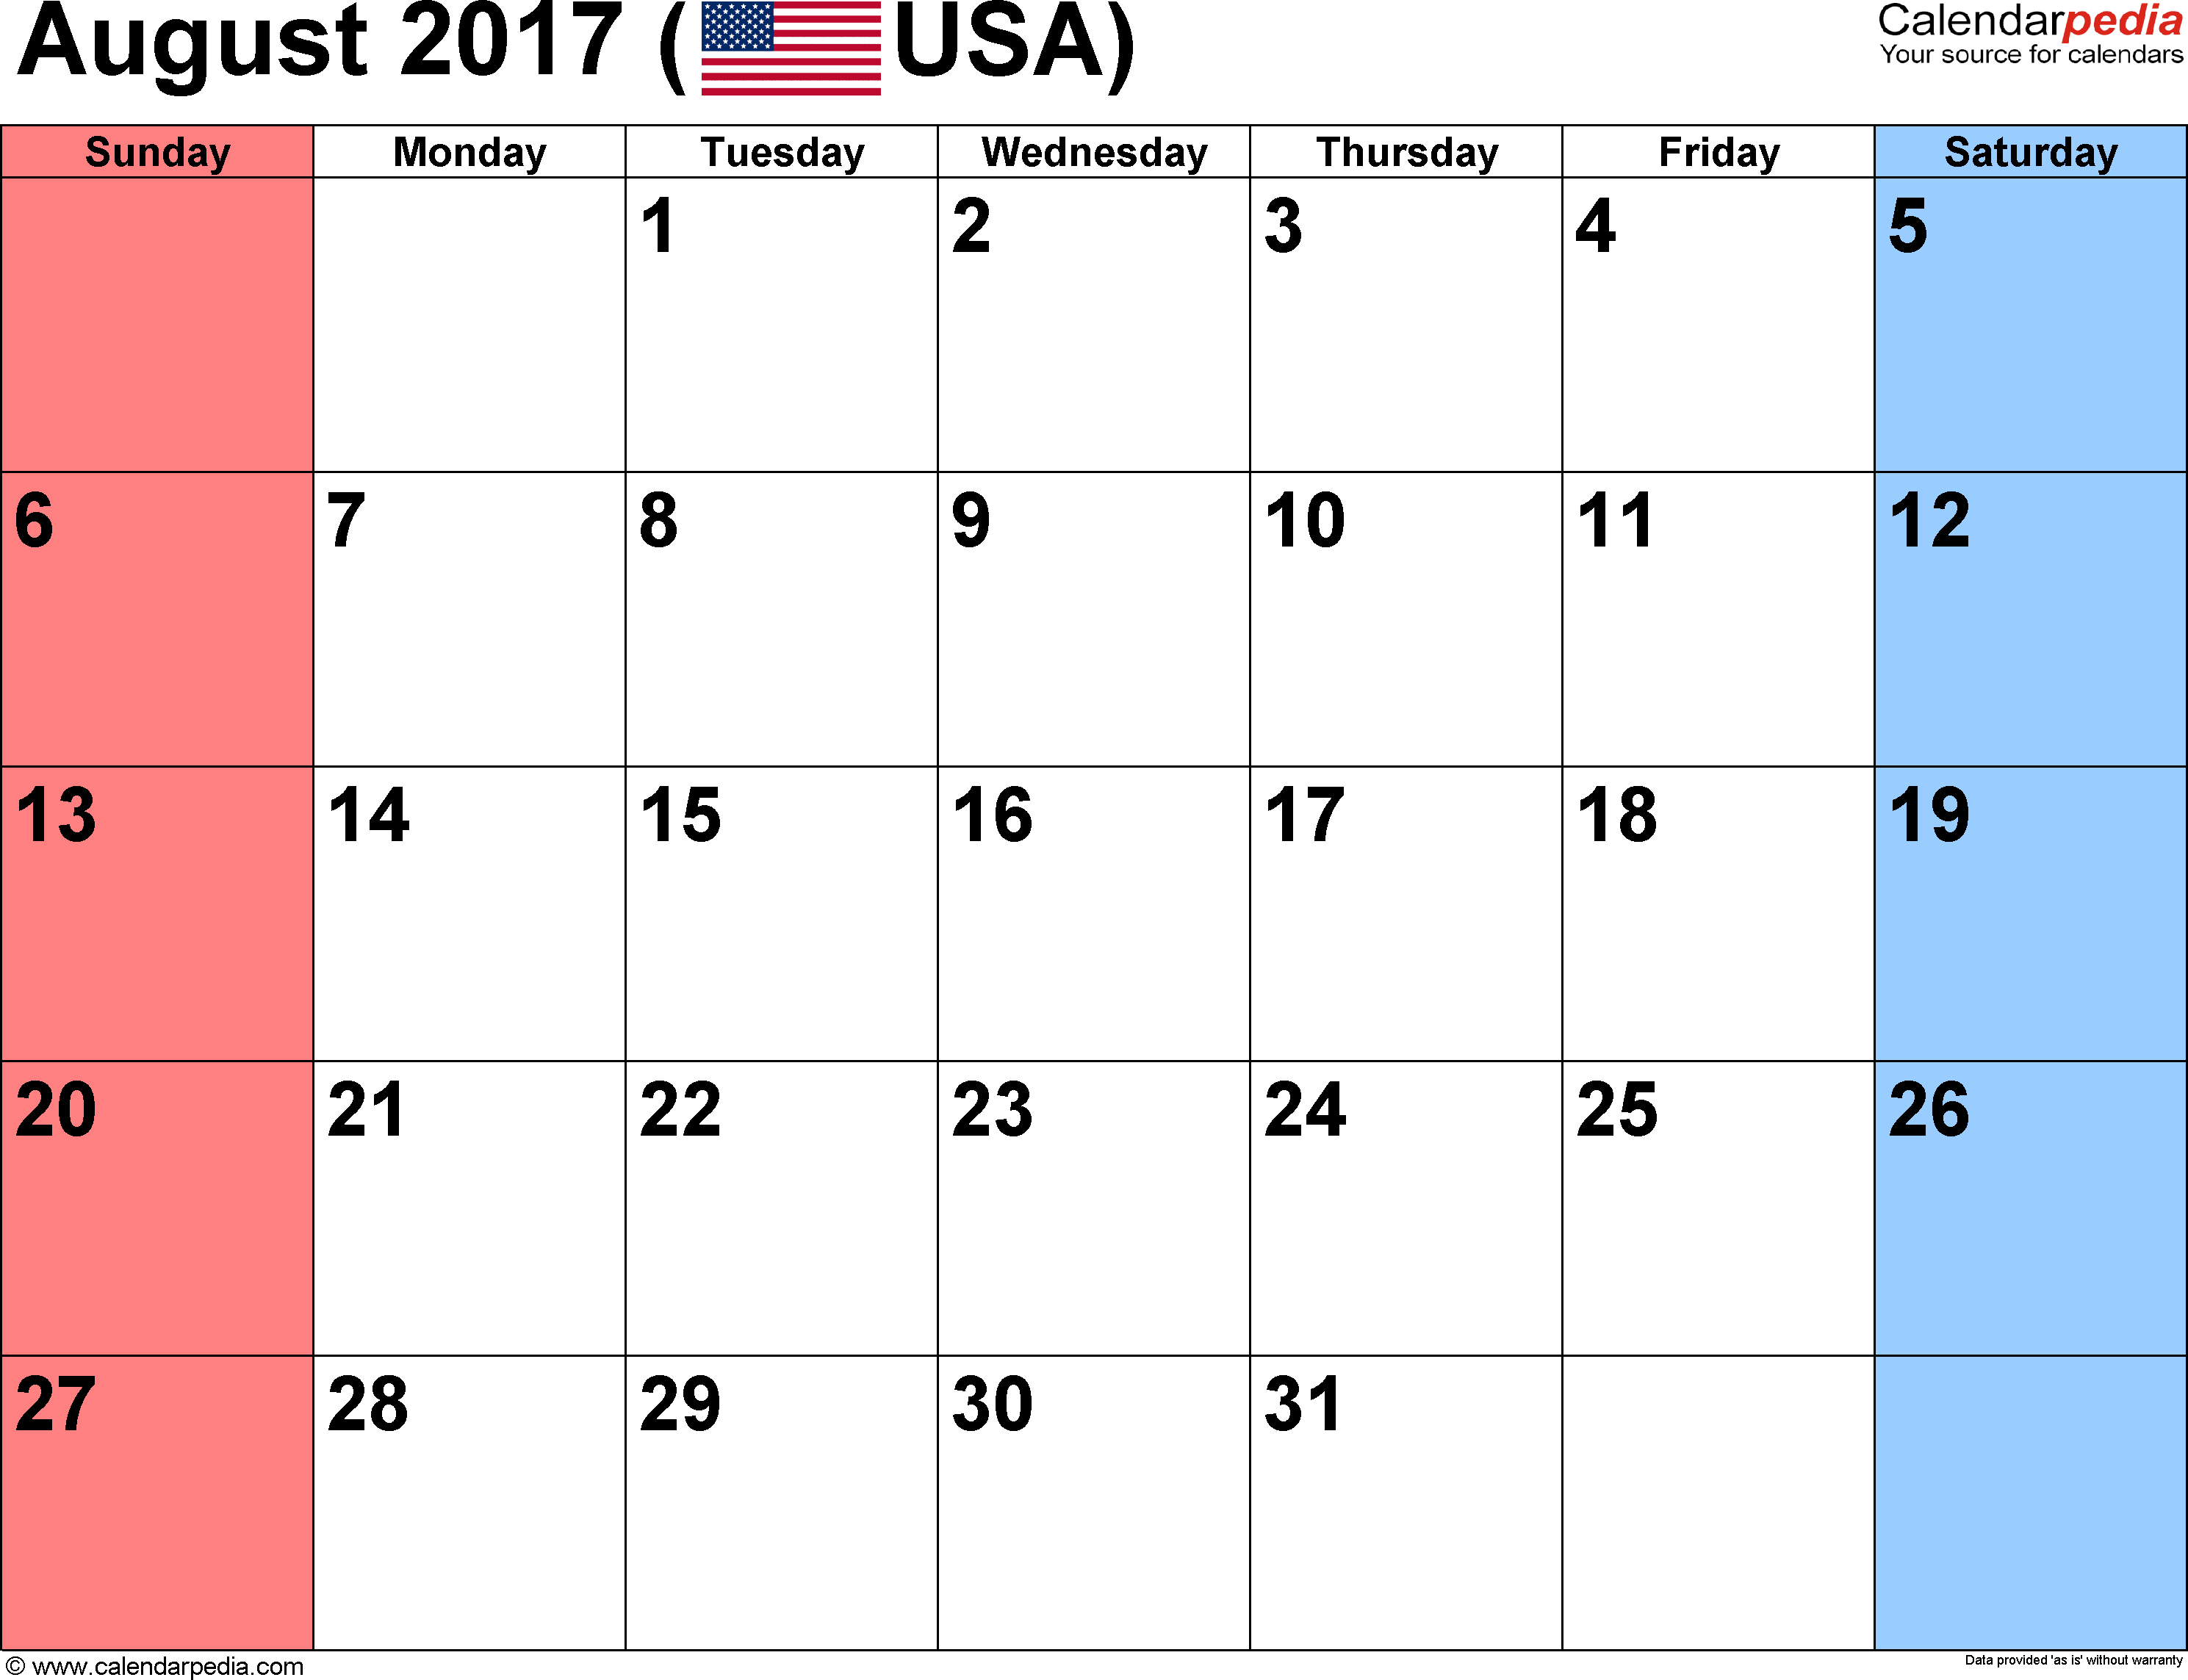 august 2017 calendar with holidays usa